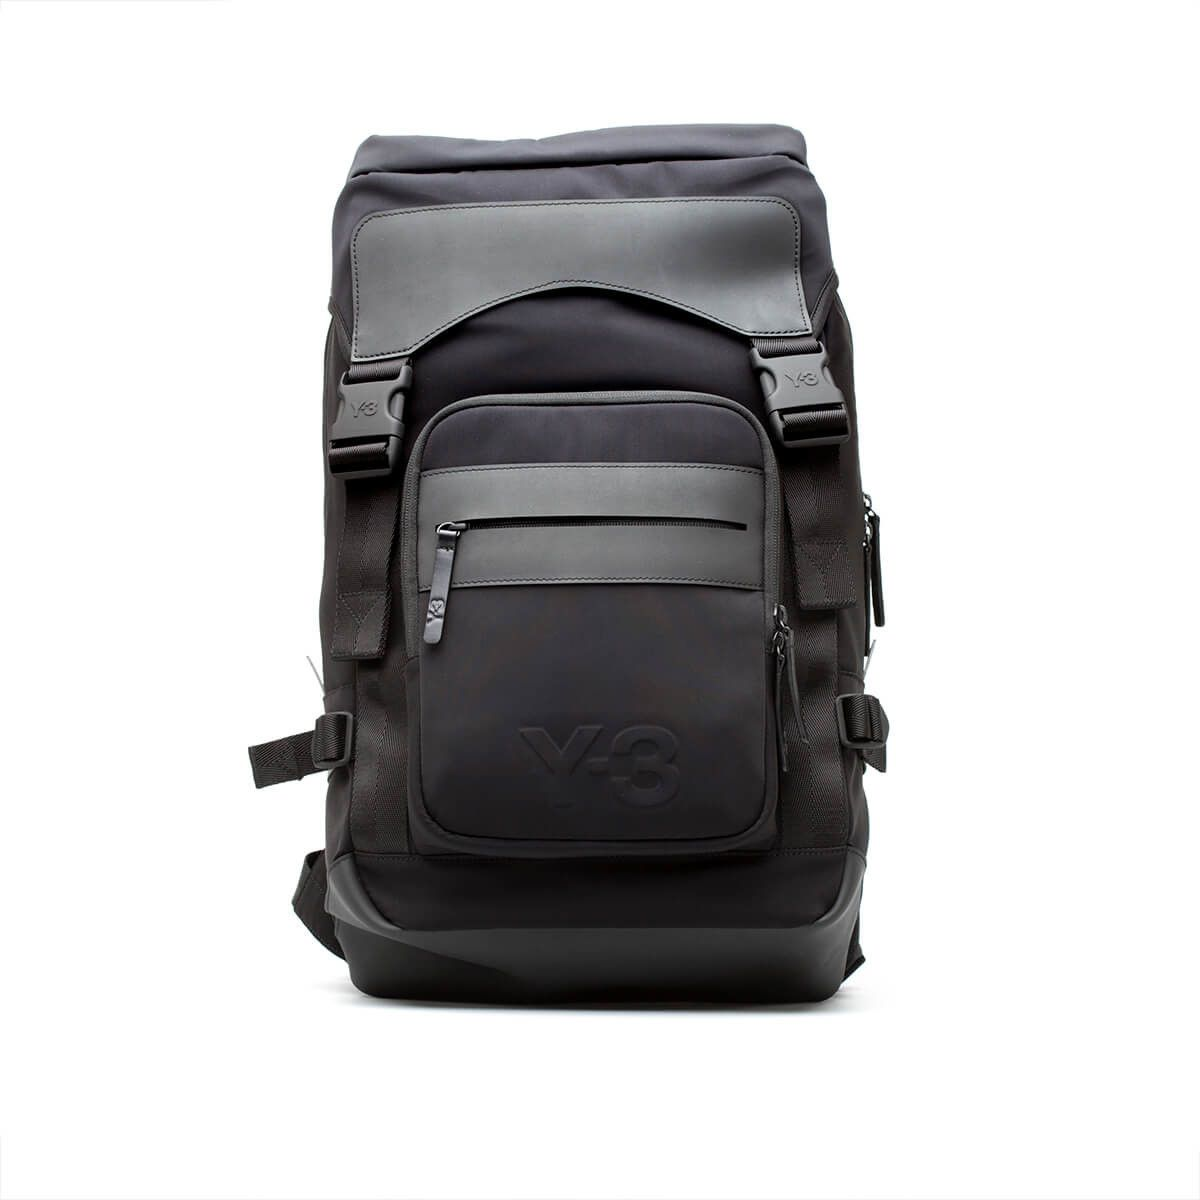 Ultratech backpack from the F W2017-18 Y-3 by Yohji Yamamoto collection aa00cb06d4006